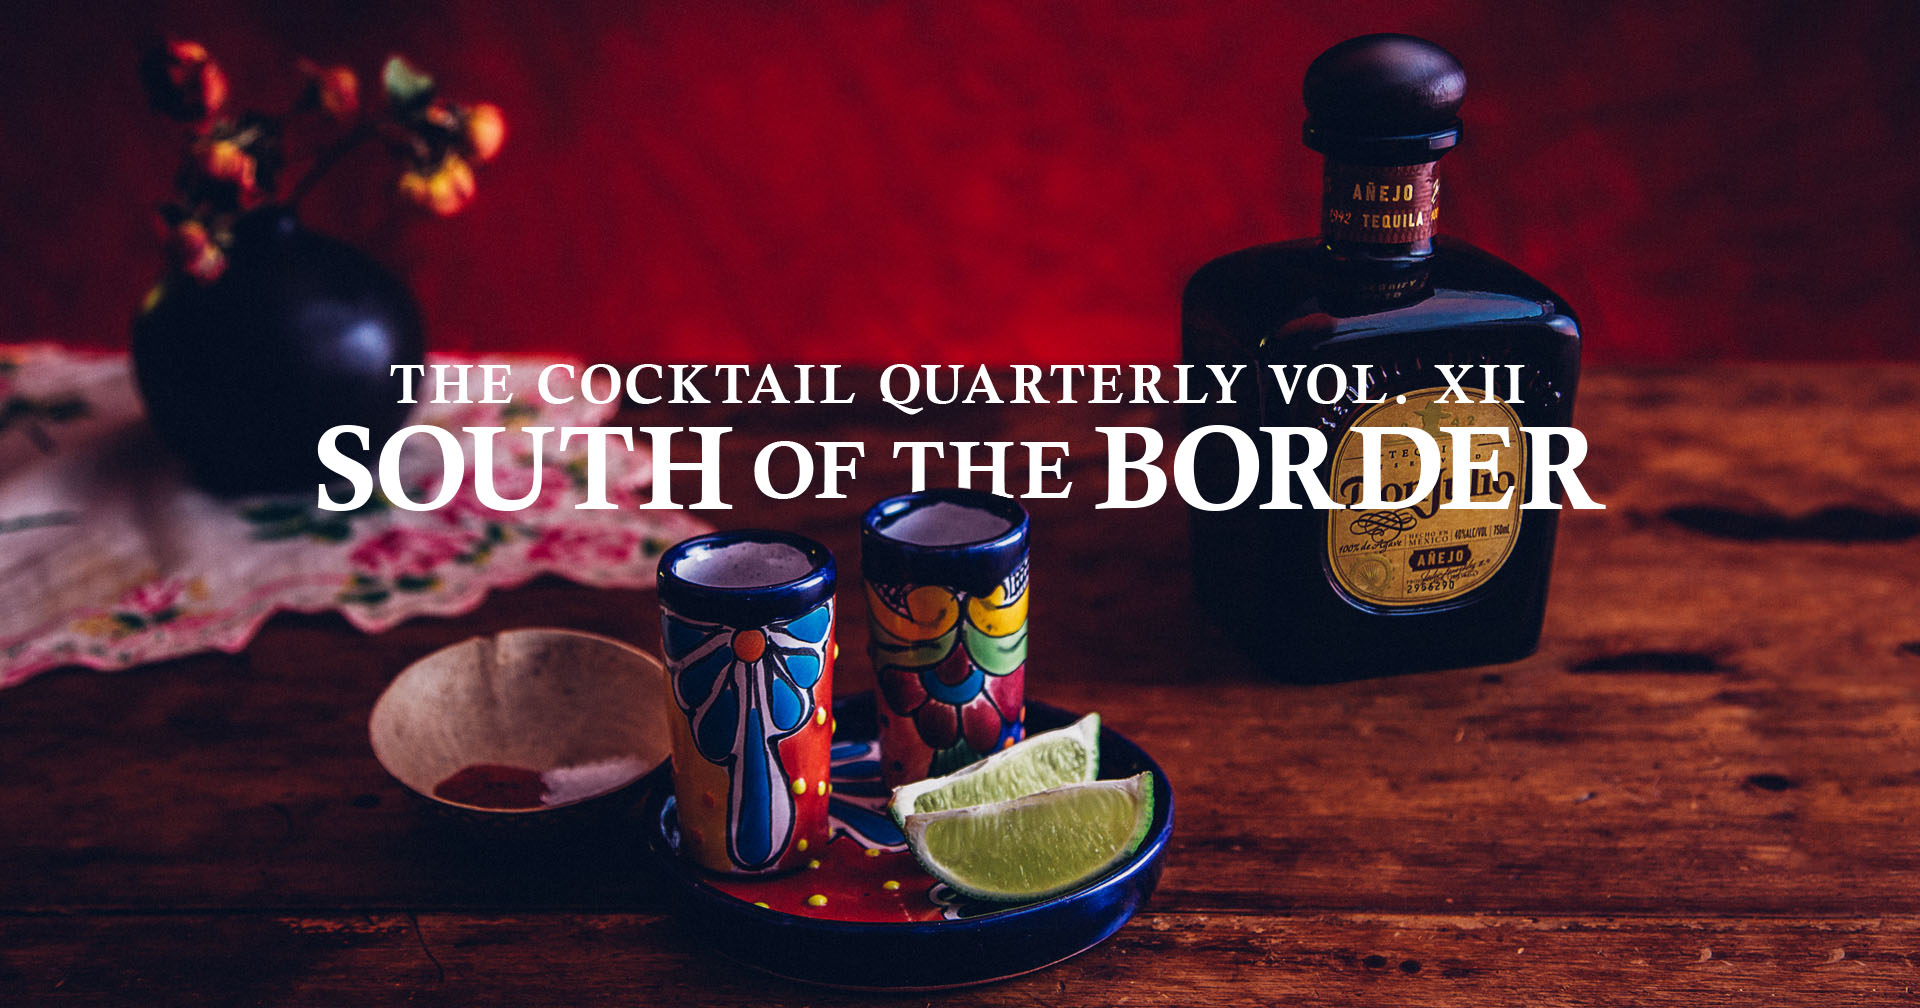 The Cocktail Quarterly, Vol. XII